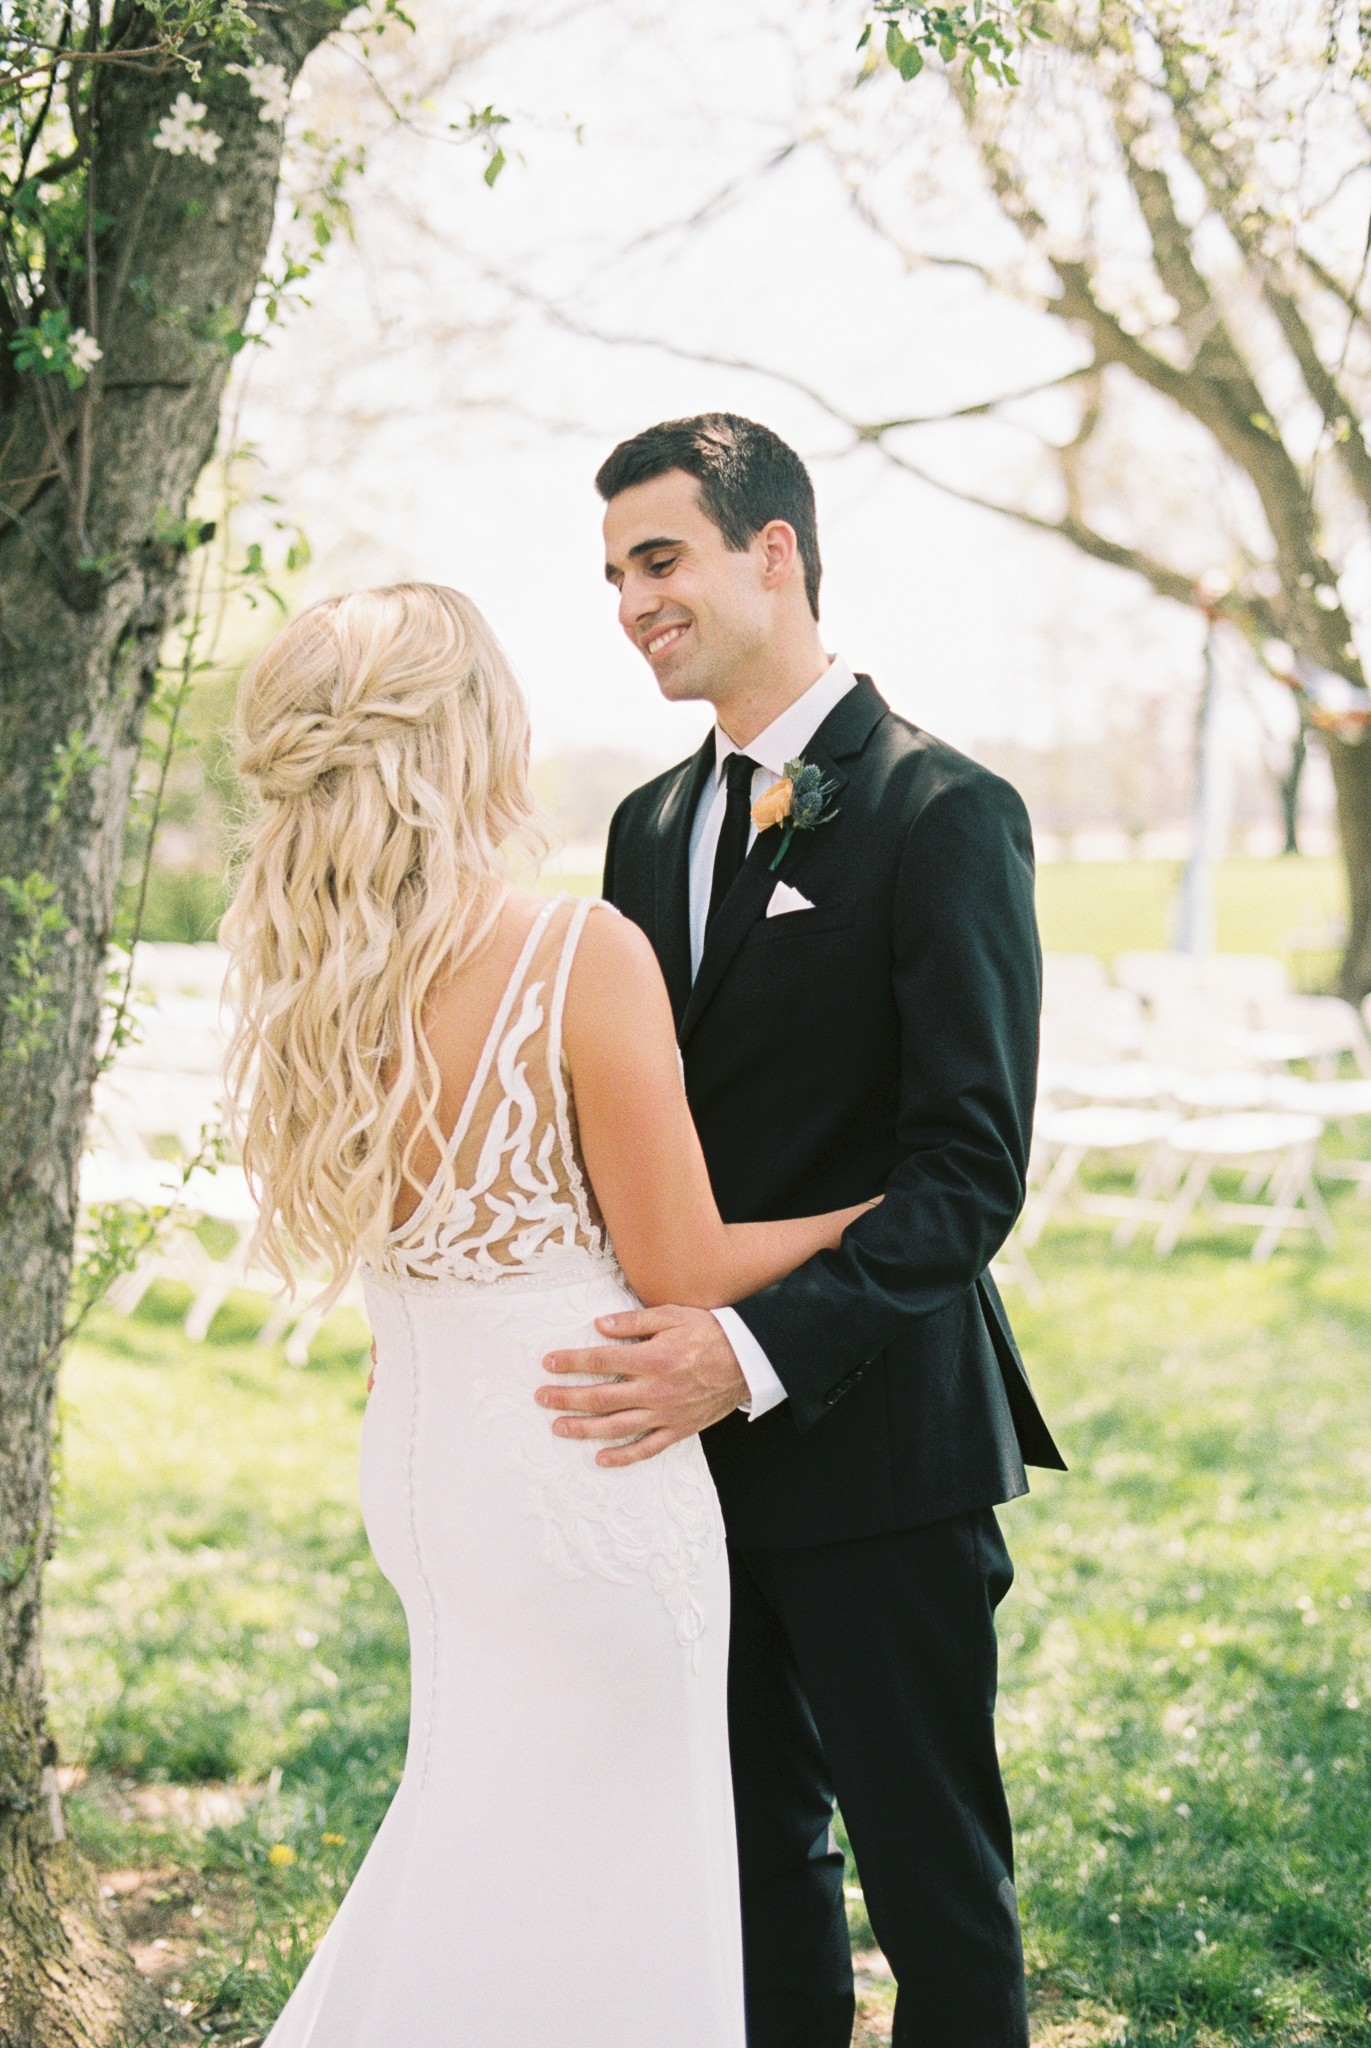 Dayton_CIncinnati_Film_Wedding_Portrait_Photographer-77.jpg